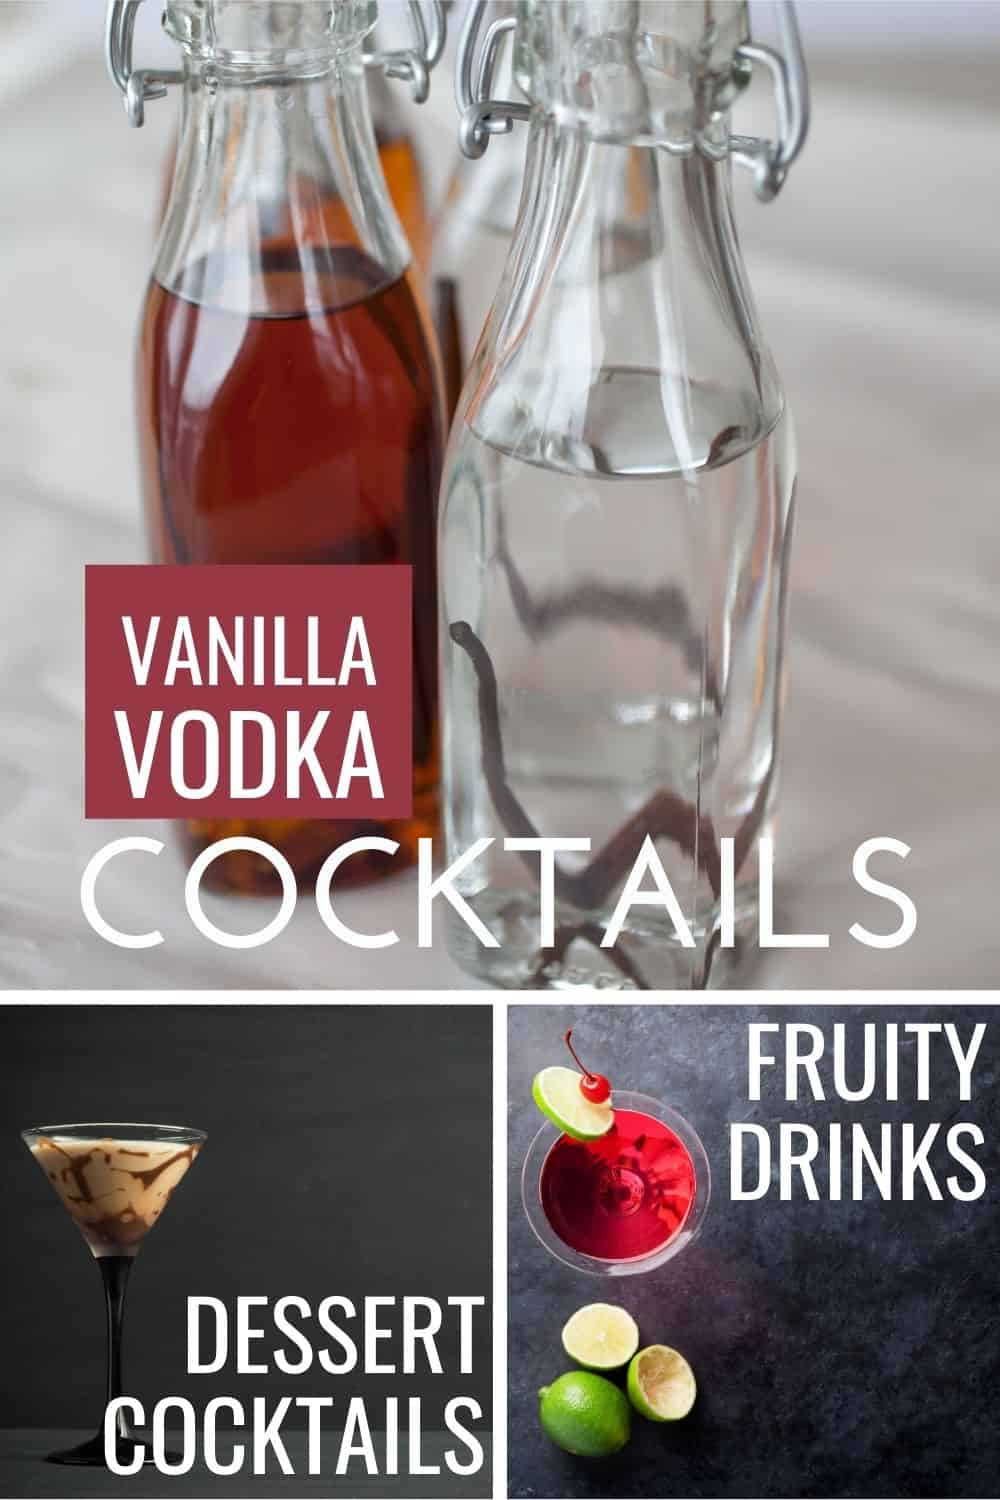 collage photo showing a bottle of vanilla infused vodka, a chocolate martini and a cosmopolitan cocktail